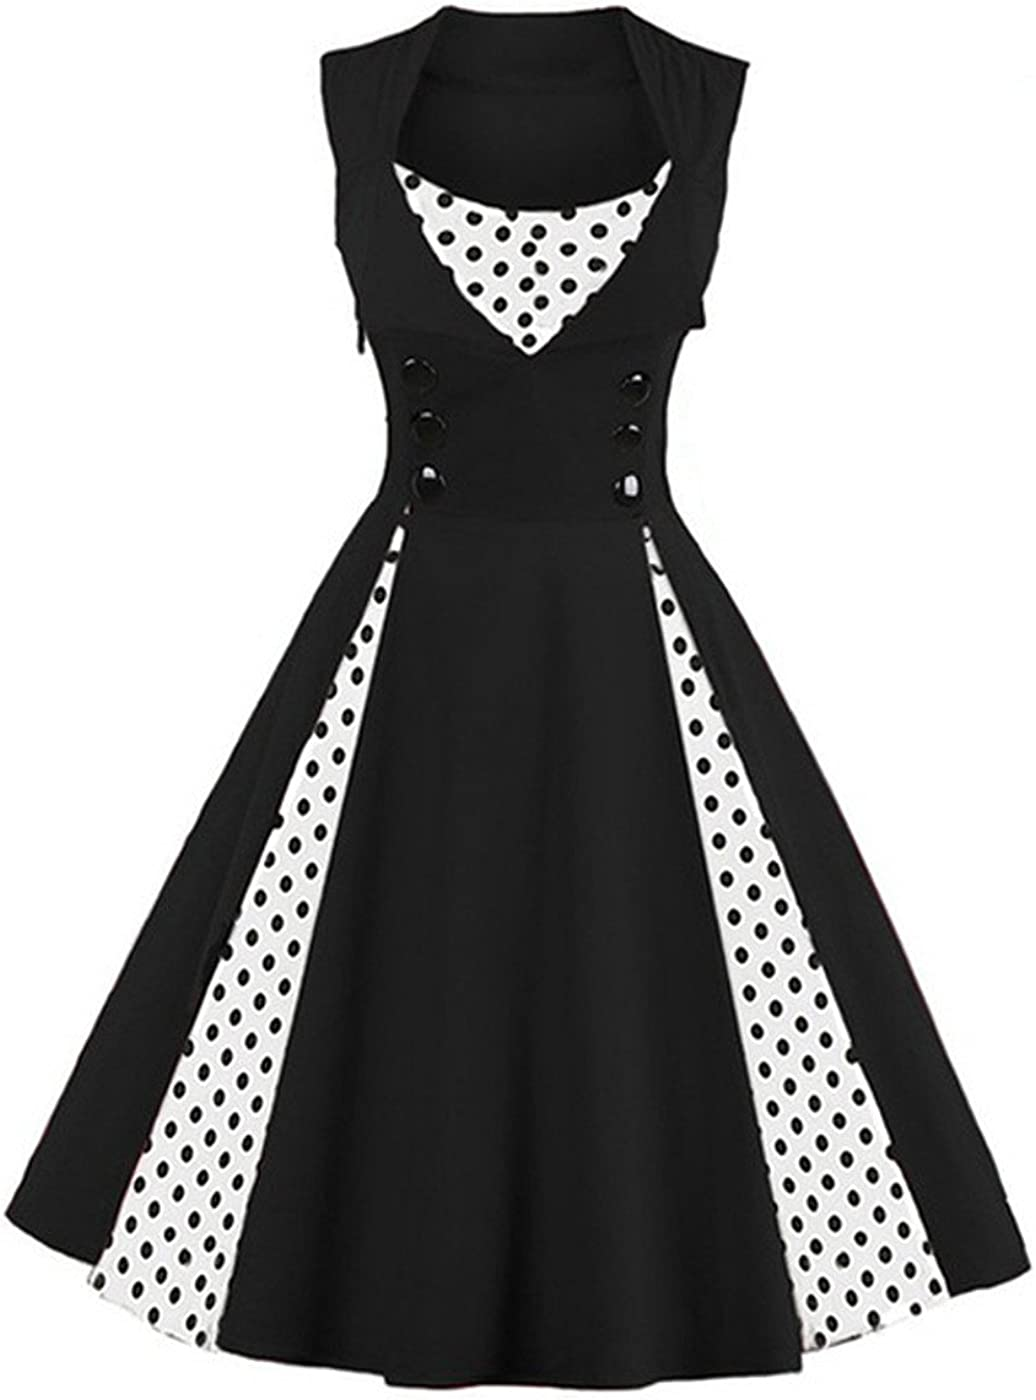 TALLA 3XL. VERNASSA 50s Vestidos Vintage,Mujeres 1950s Vintage A-Line Rockabilly Clásico Verano Dress for Evening Party Cocktail, Multicolor, S-Plus Size 4XL 1357-puntos Negros 3XL